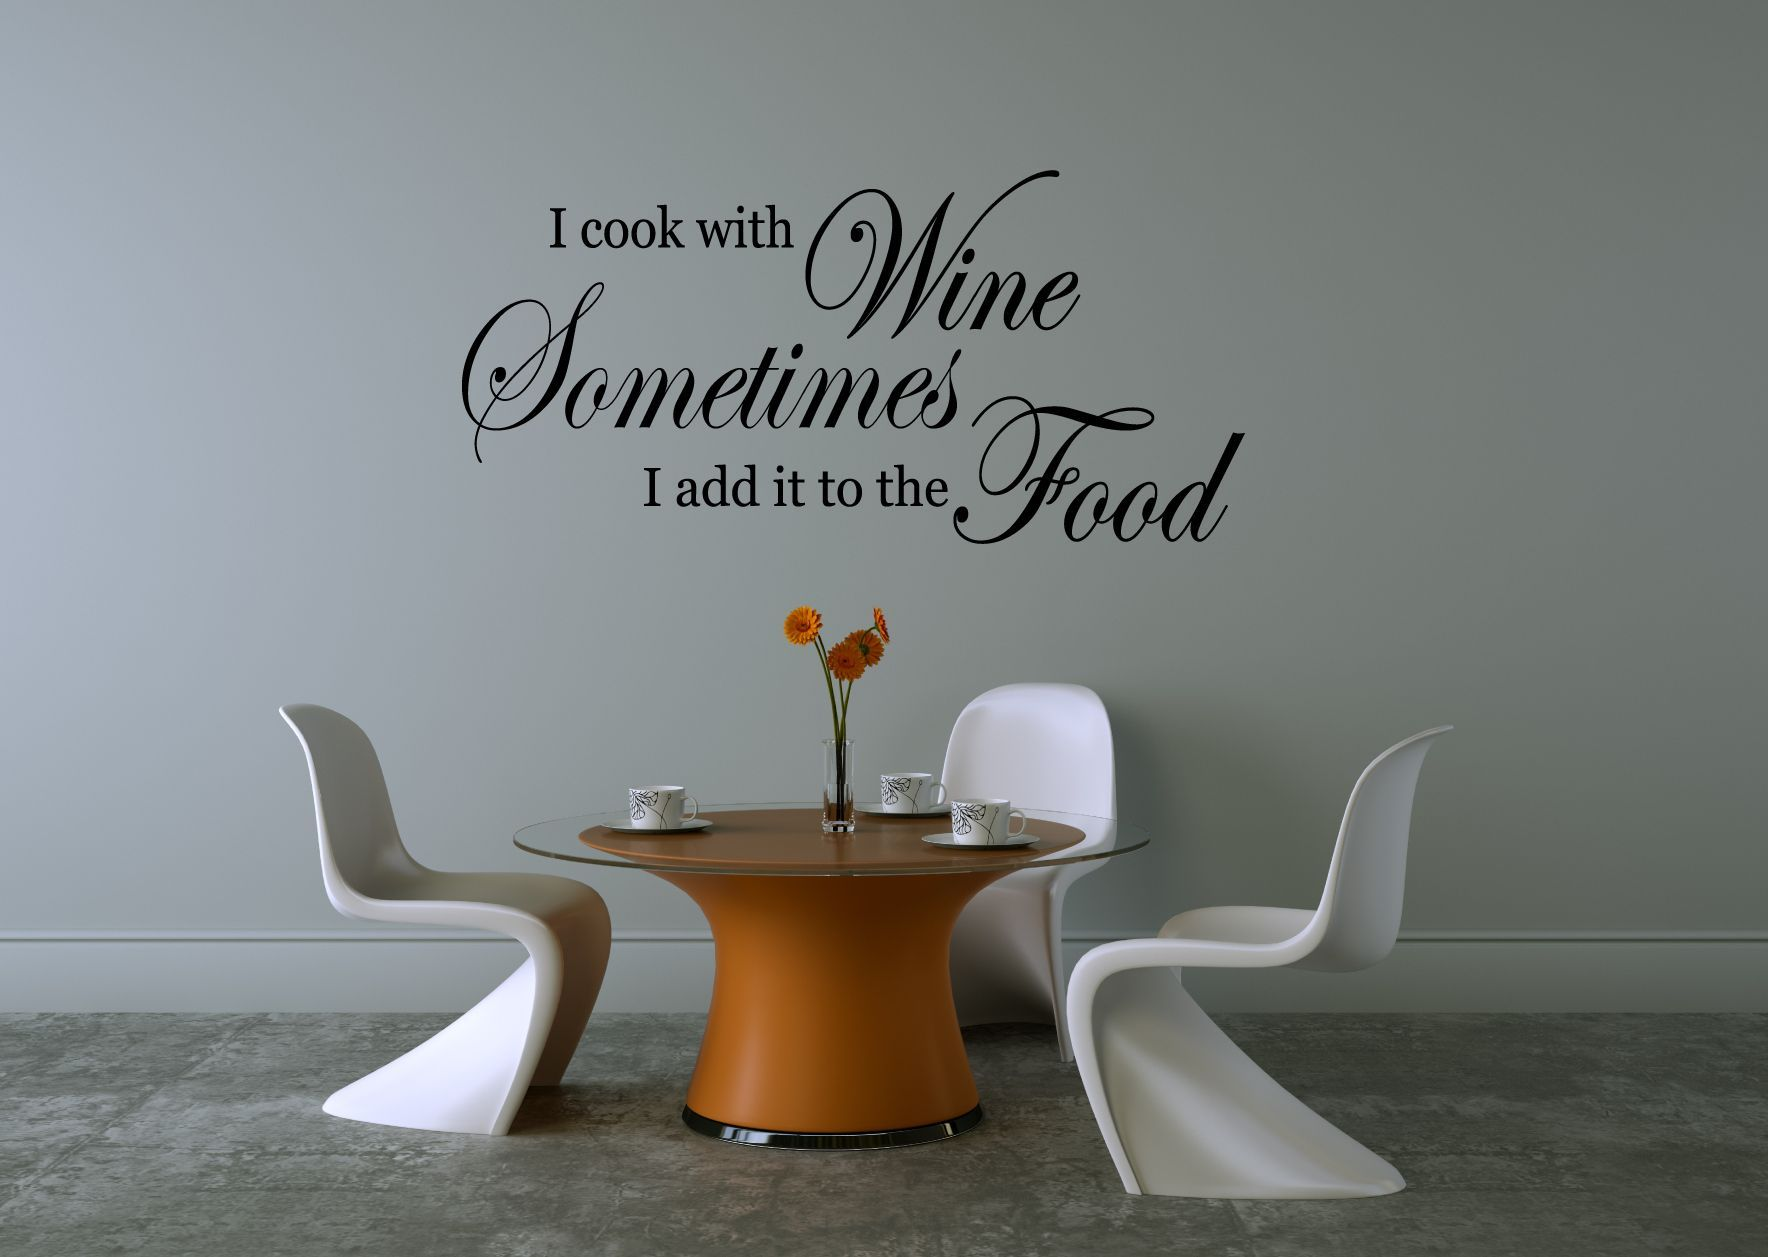 sayings wall decals italian kitchen wall decals ebay on wall stickers for living room id=21816